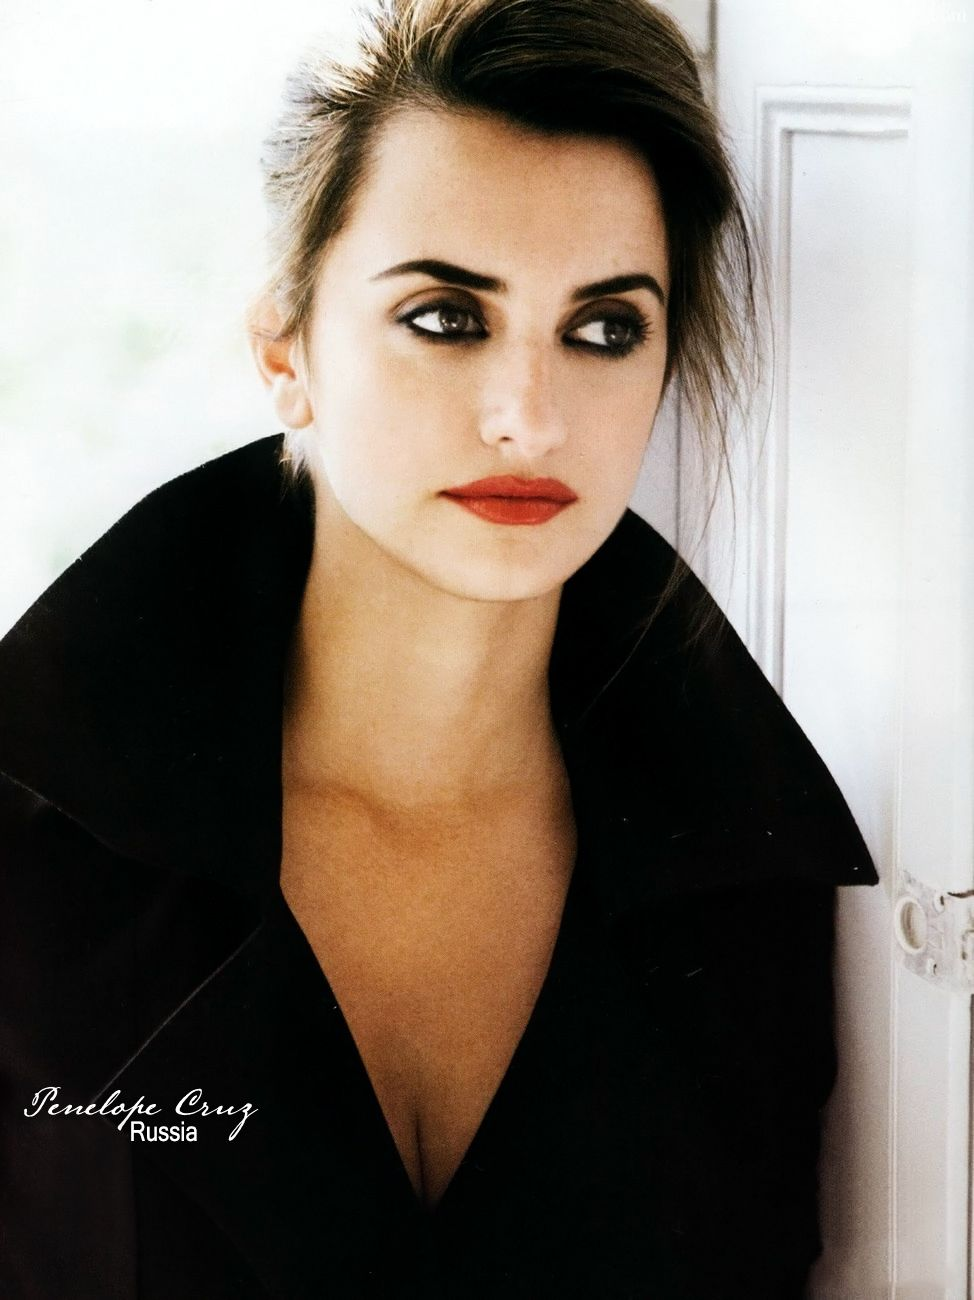 penelope cruz for lancome make up girl stuff pinterest penelope cruz lancome and salma. Black Bedroom Furniture Sets. Home Design Ideas